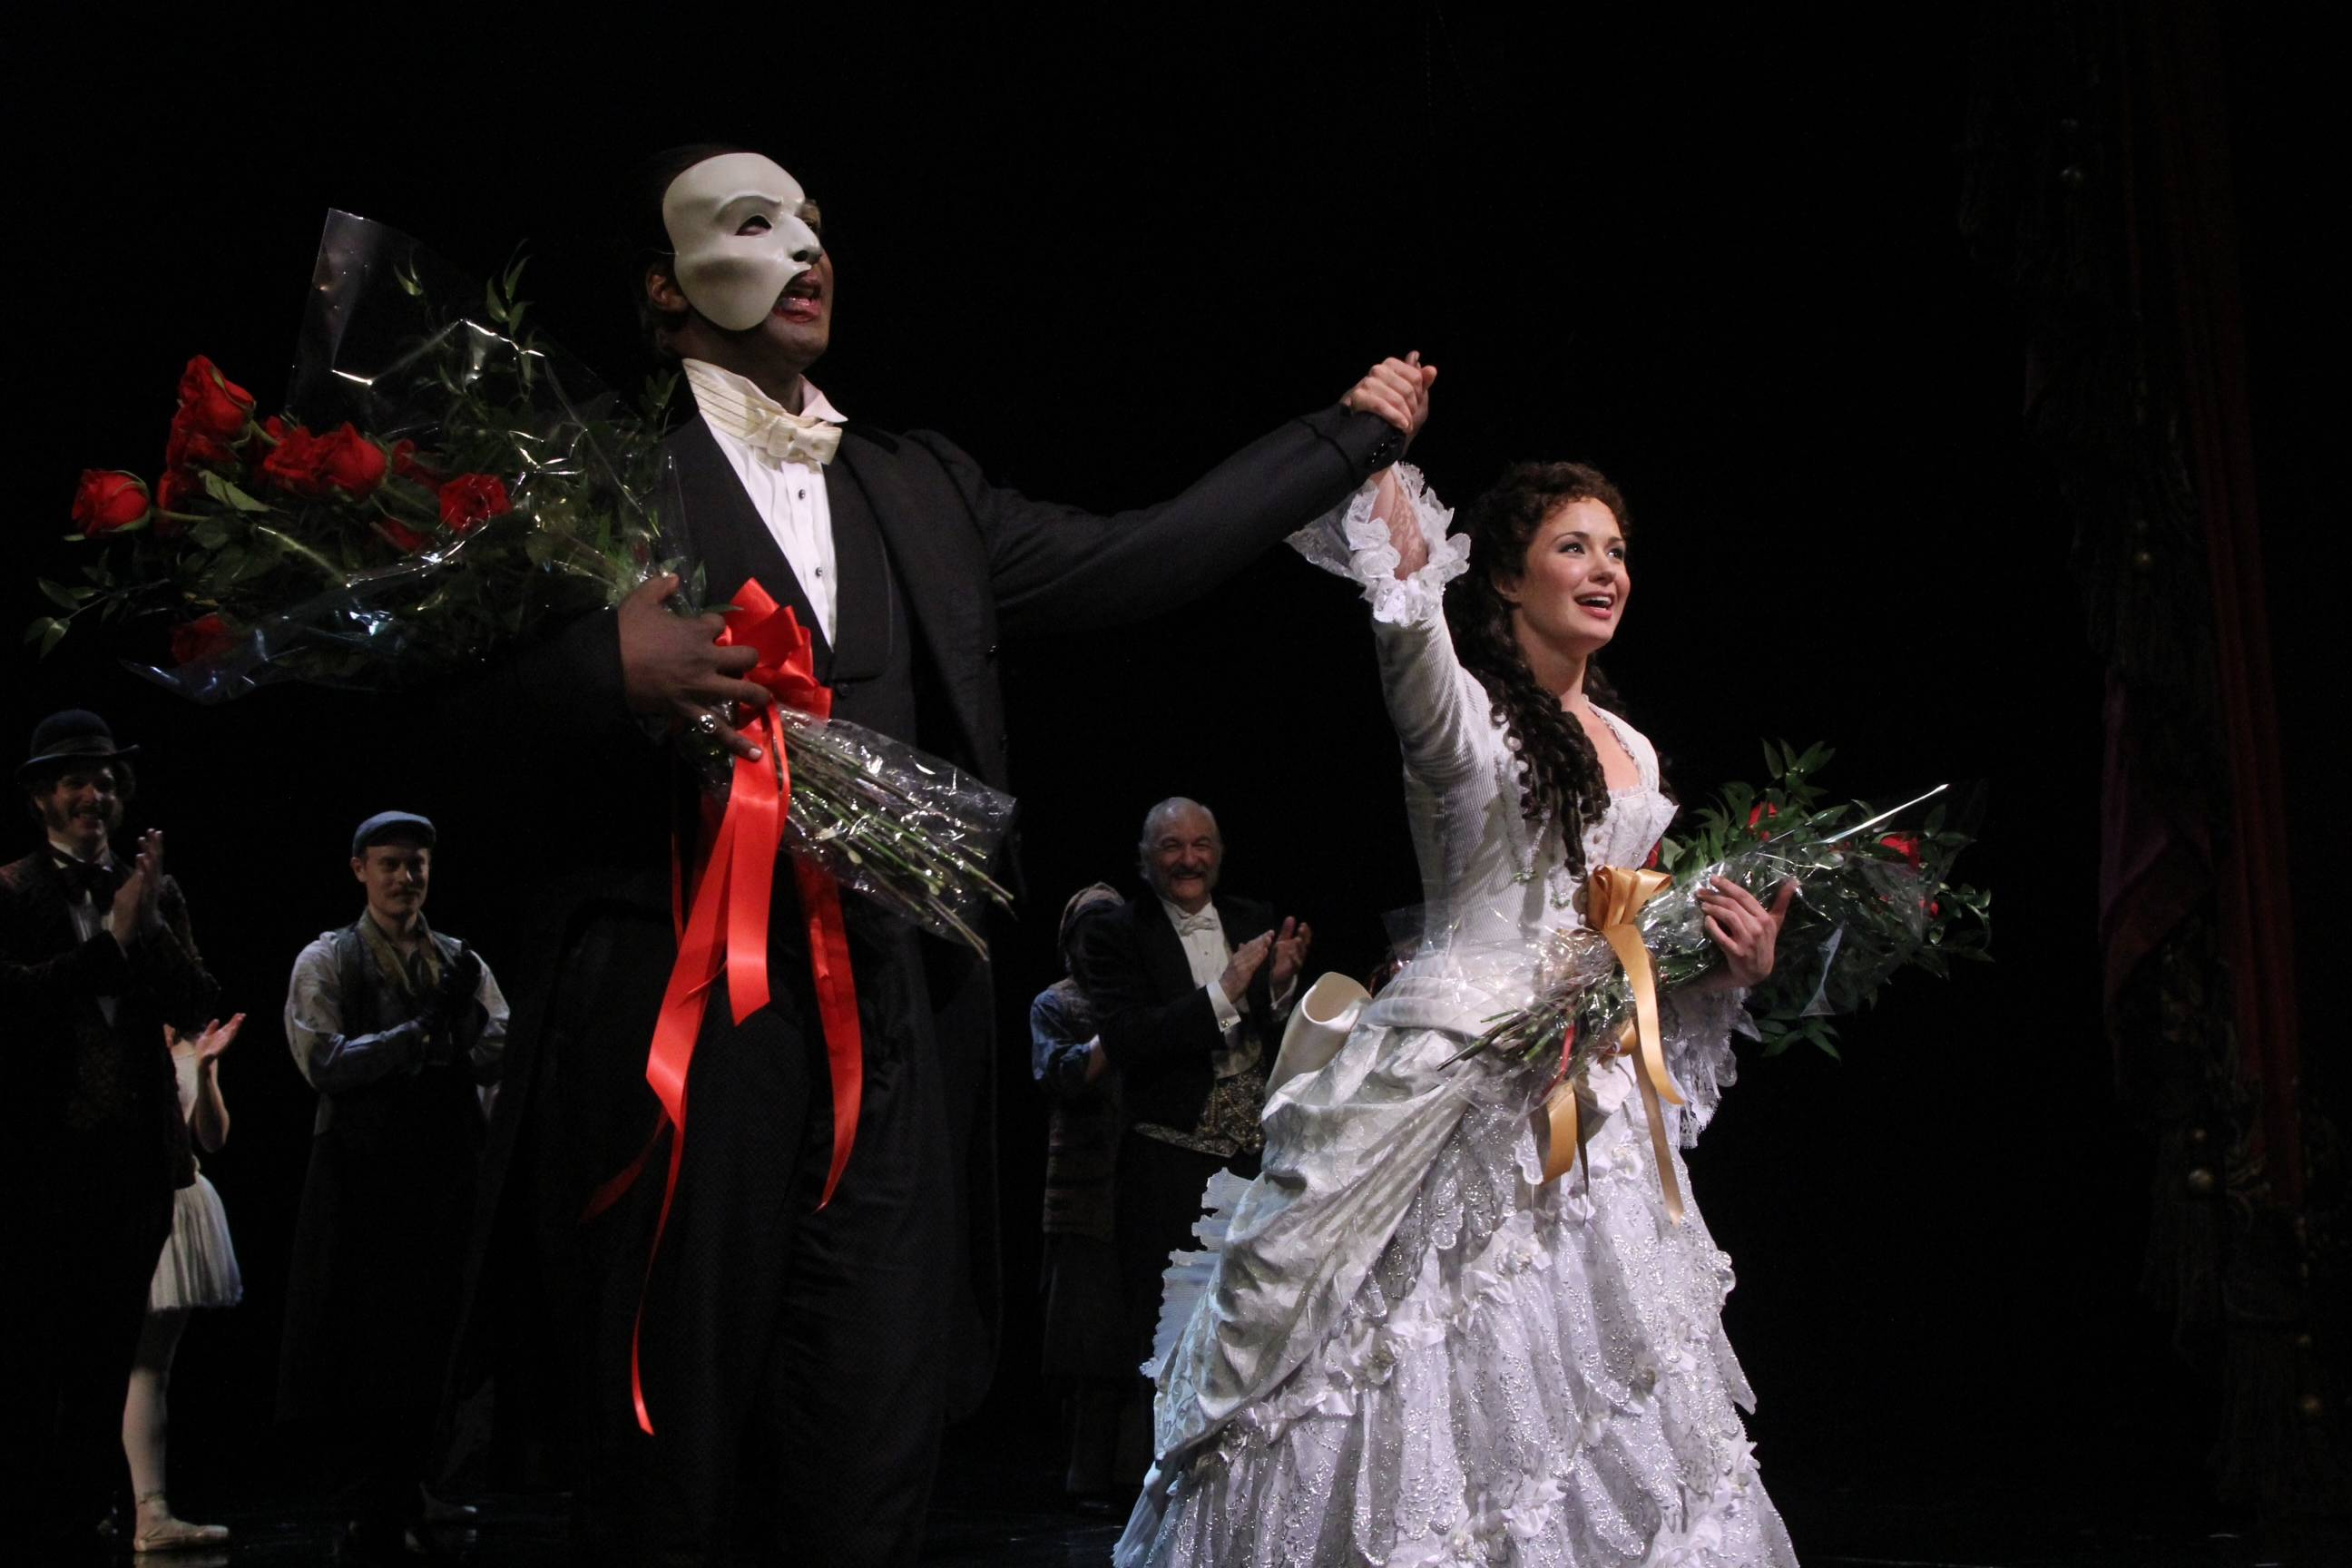 "This May 12, 2014 photo released by The Publicity Office shows Norm Lewis, left, and Sierra Boggess acknowledging applause on the pair's opening night with the Broadway production of The Phantom of the Opera at The Majestic Theatre, in New York. Lewis is the first African-American actor to take on the title role in Broadway's ""The Phantom of the Opera."" (AP Photo/The Publicity Office, Bruce Glikas)"